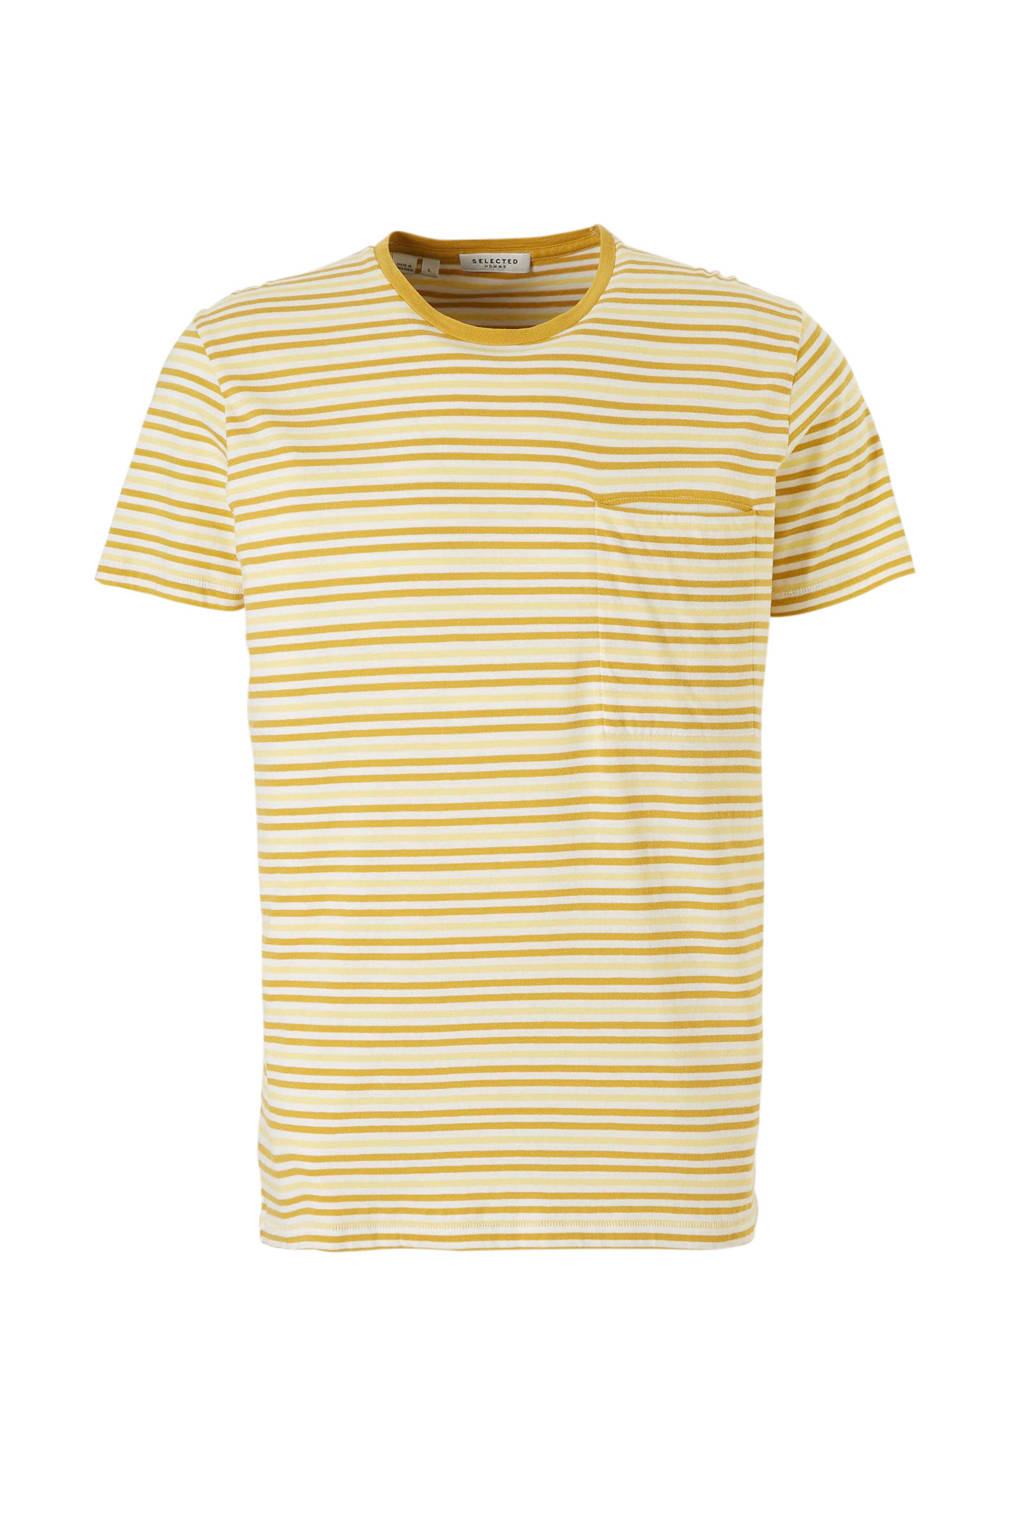 SELECTED HOMME T-shirt, Geel/wit